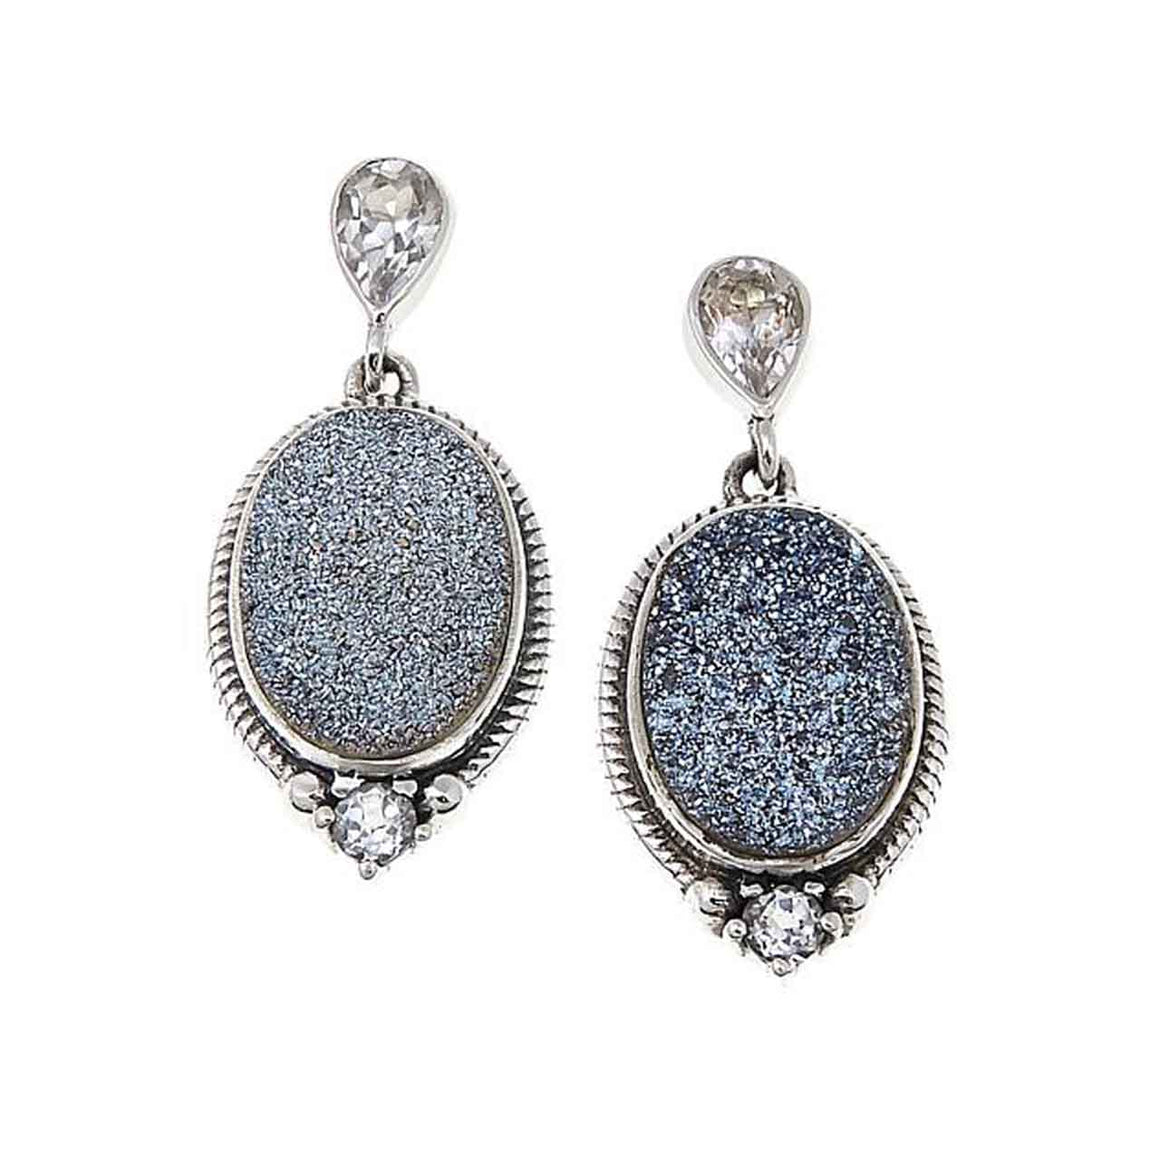 Carribean Blue Drusy and White Topaz Earrings